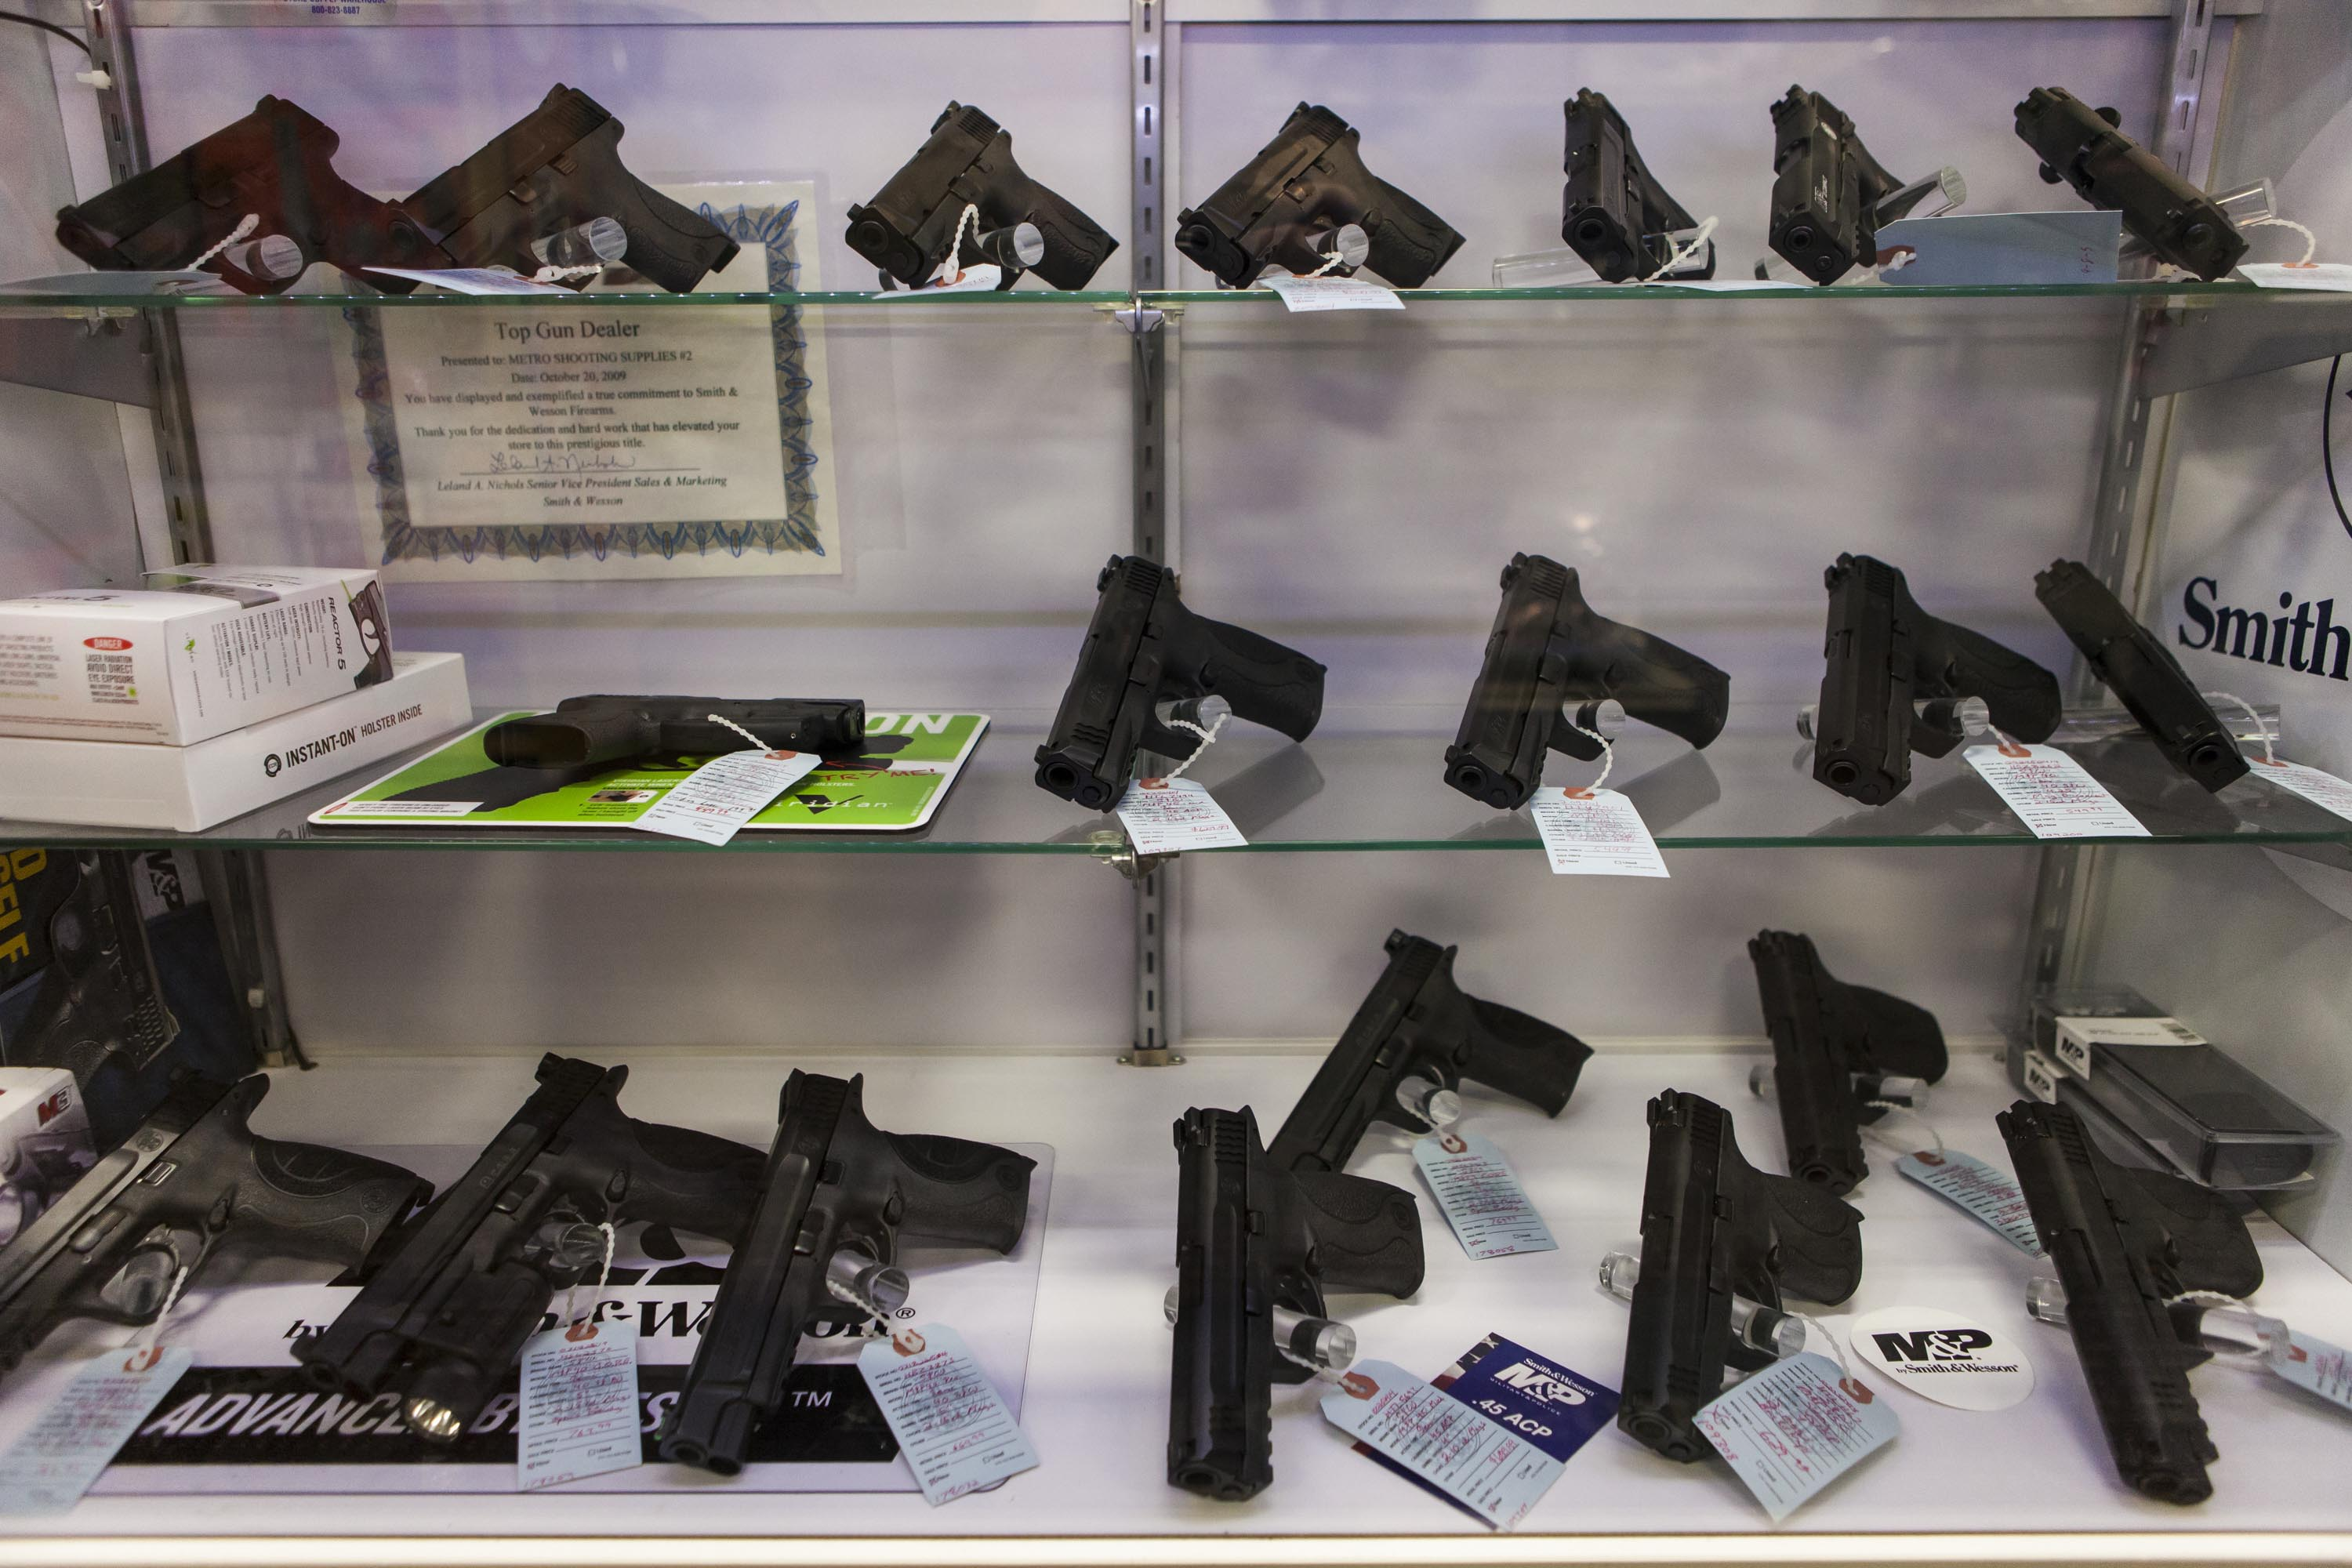 Gun Shop Sees Increase in Business Ahead of Awaited Grand Jury Decision Near Ferguson